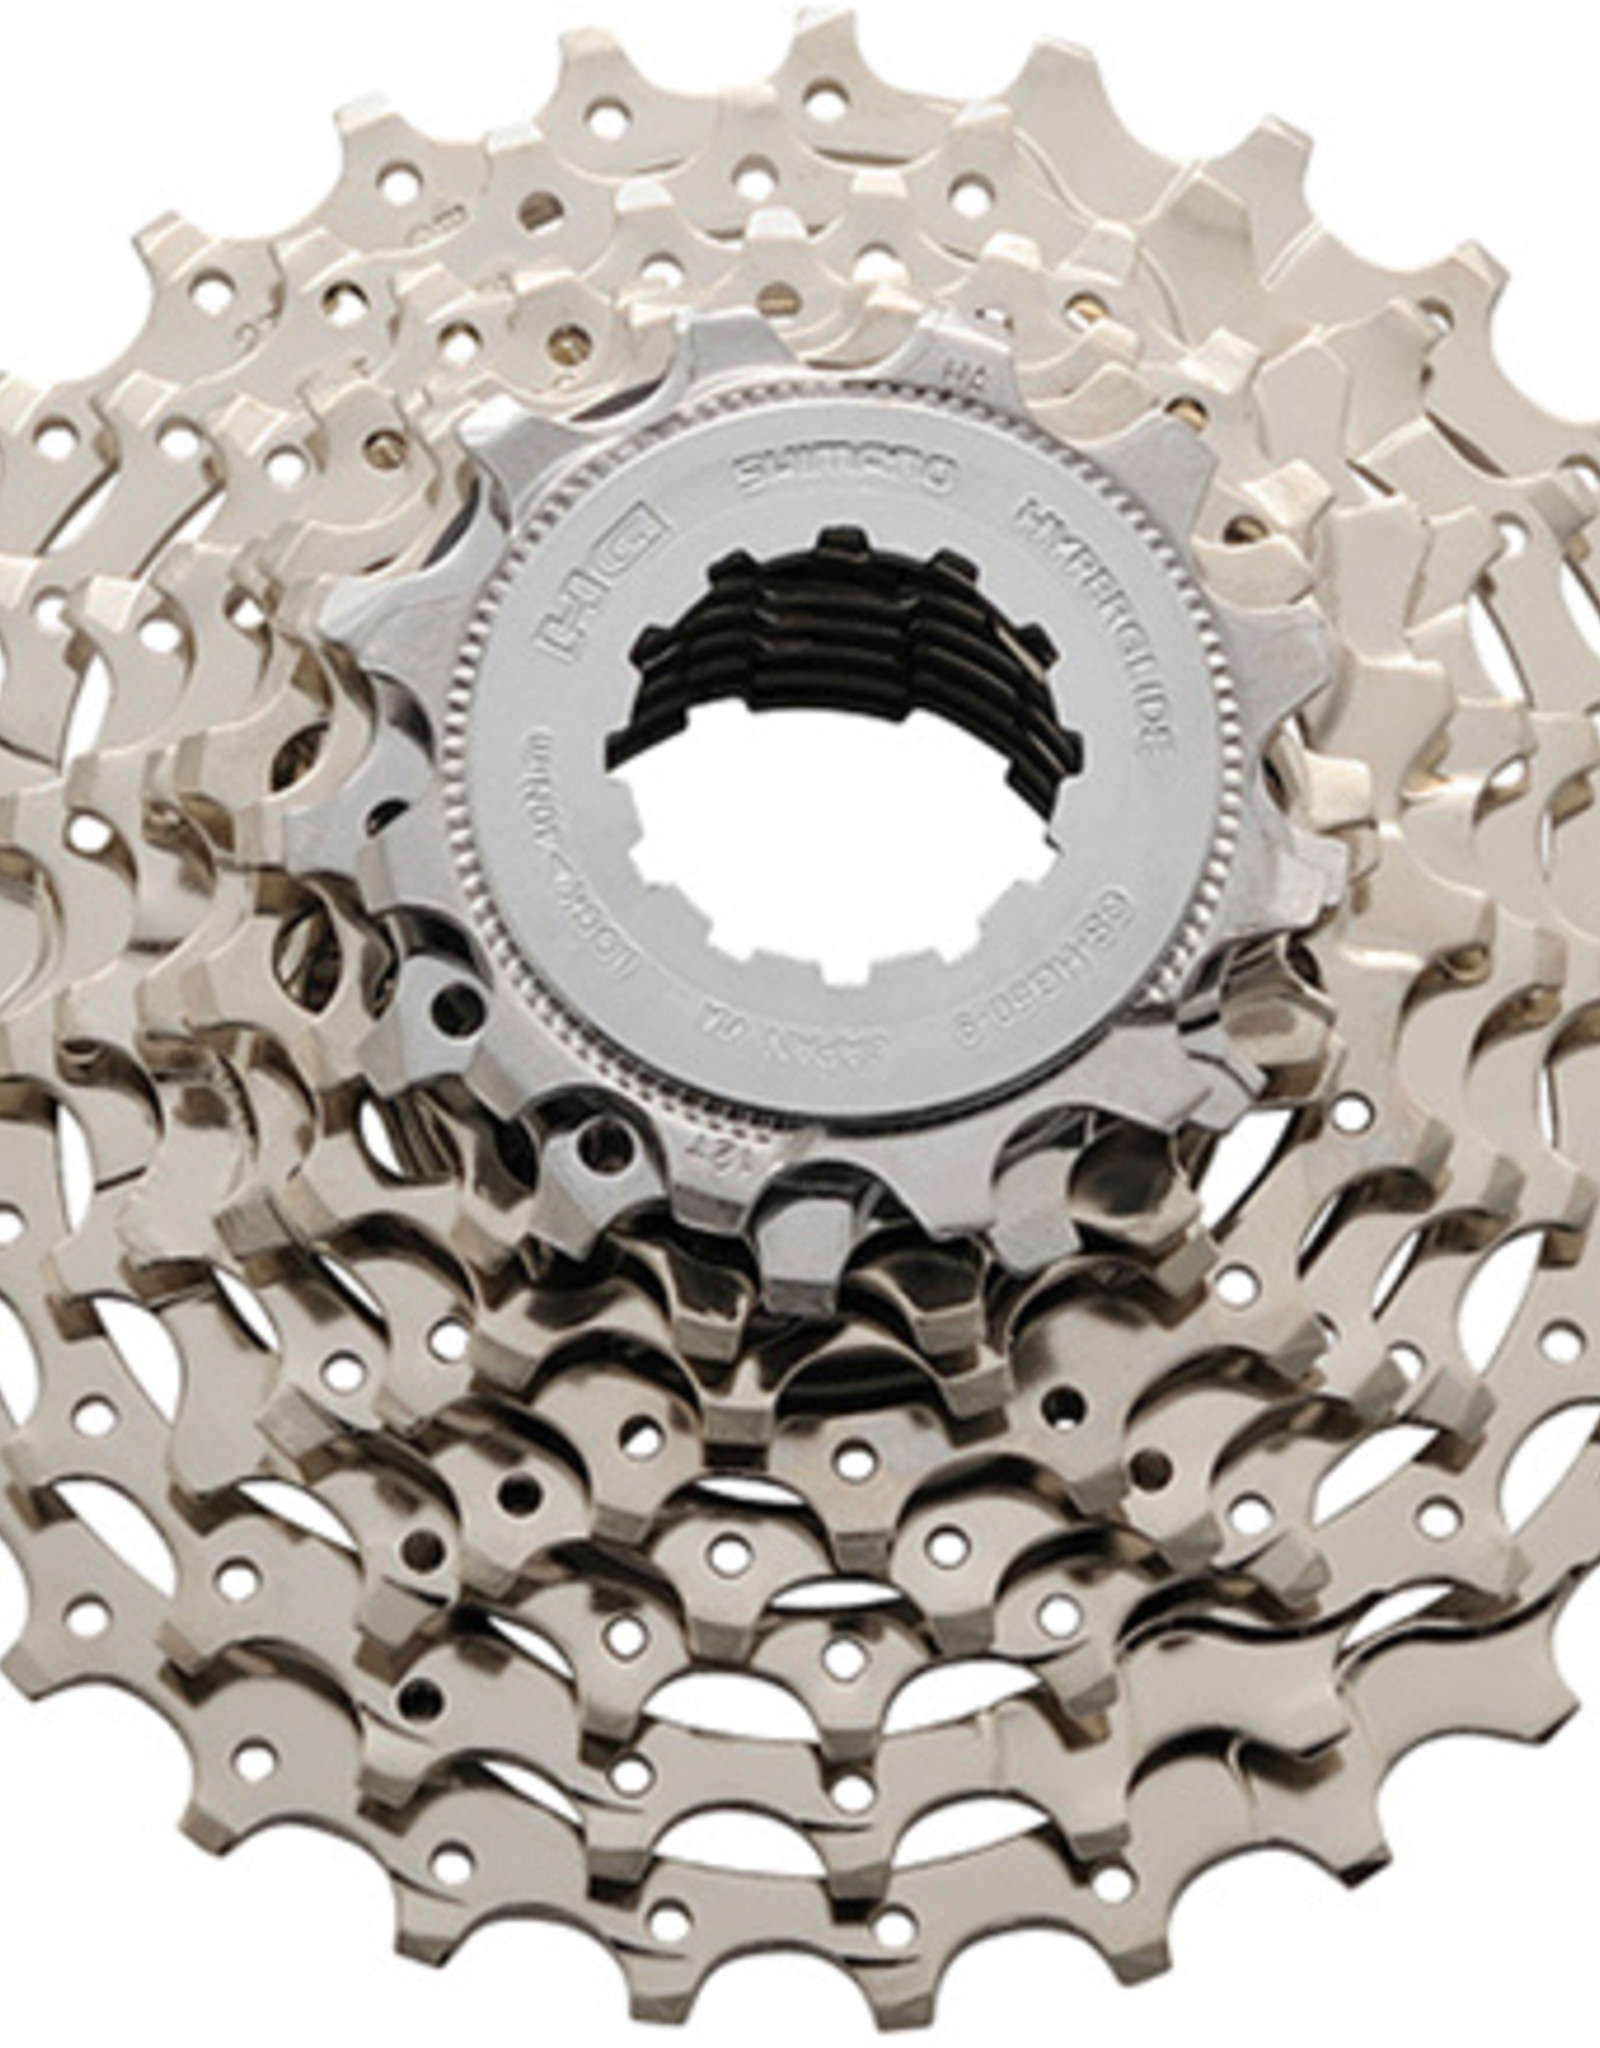 Shimano HG50 - 13-25 - 9 Speed Road Cassette